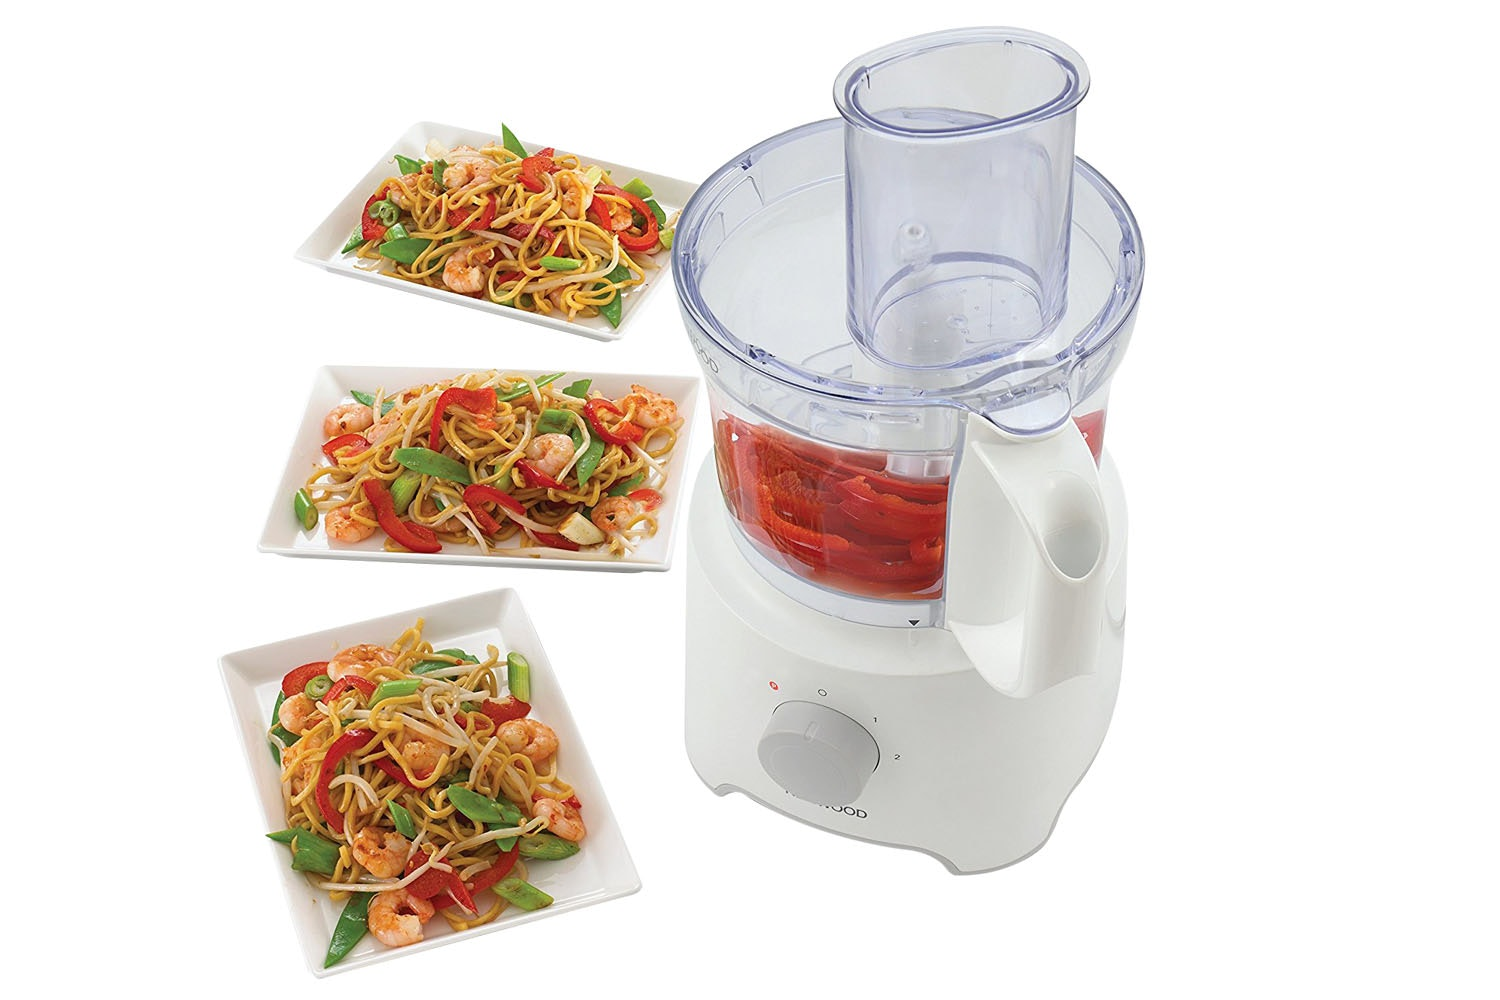 Kenwood MultiPro Compact Food Processor | FDP301WH